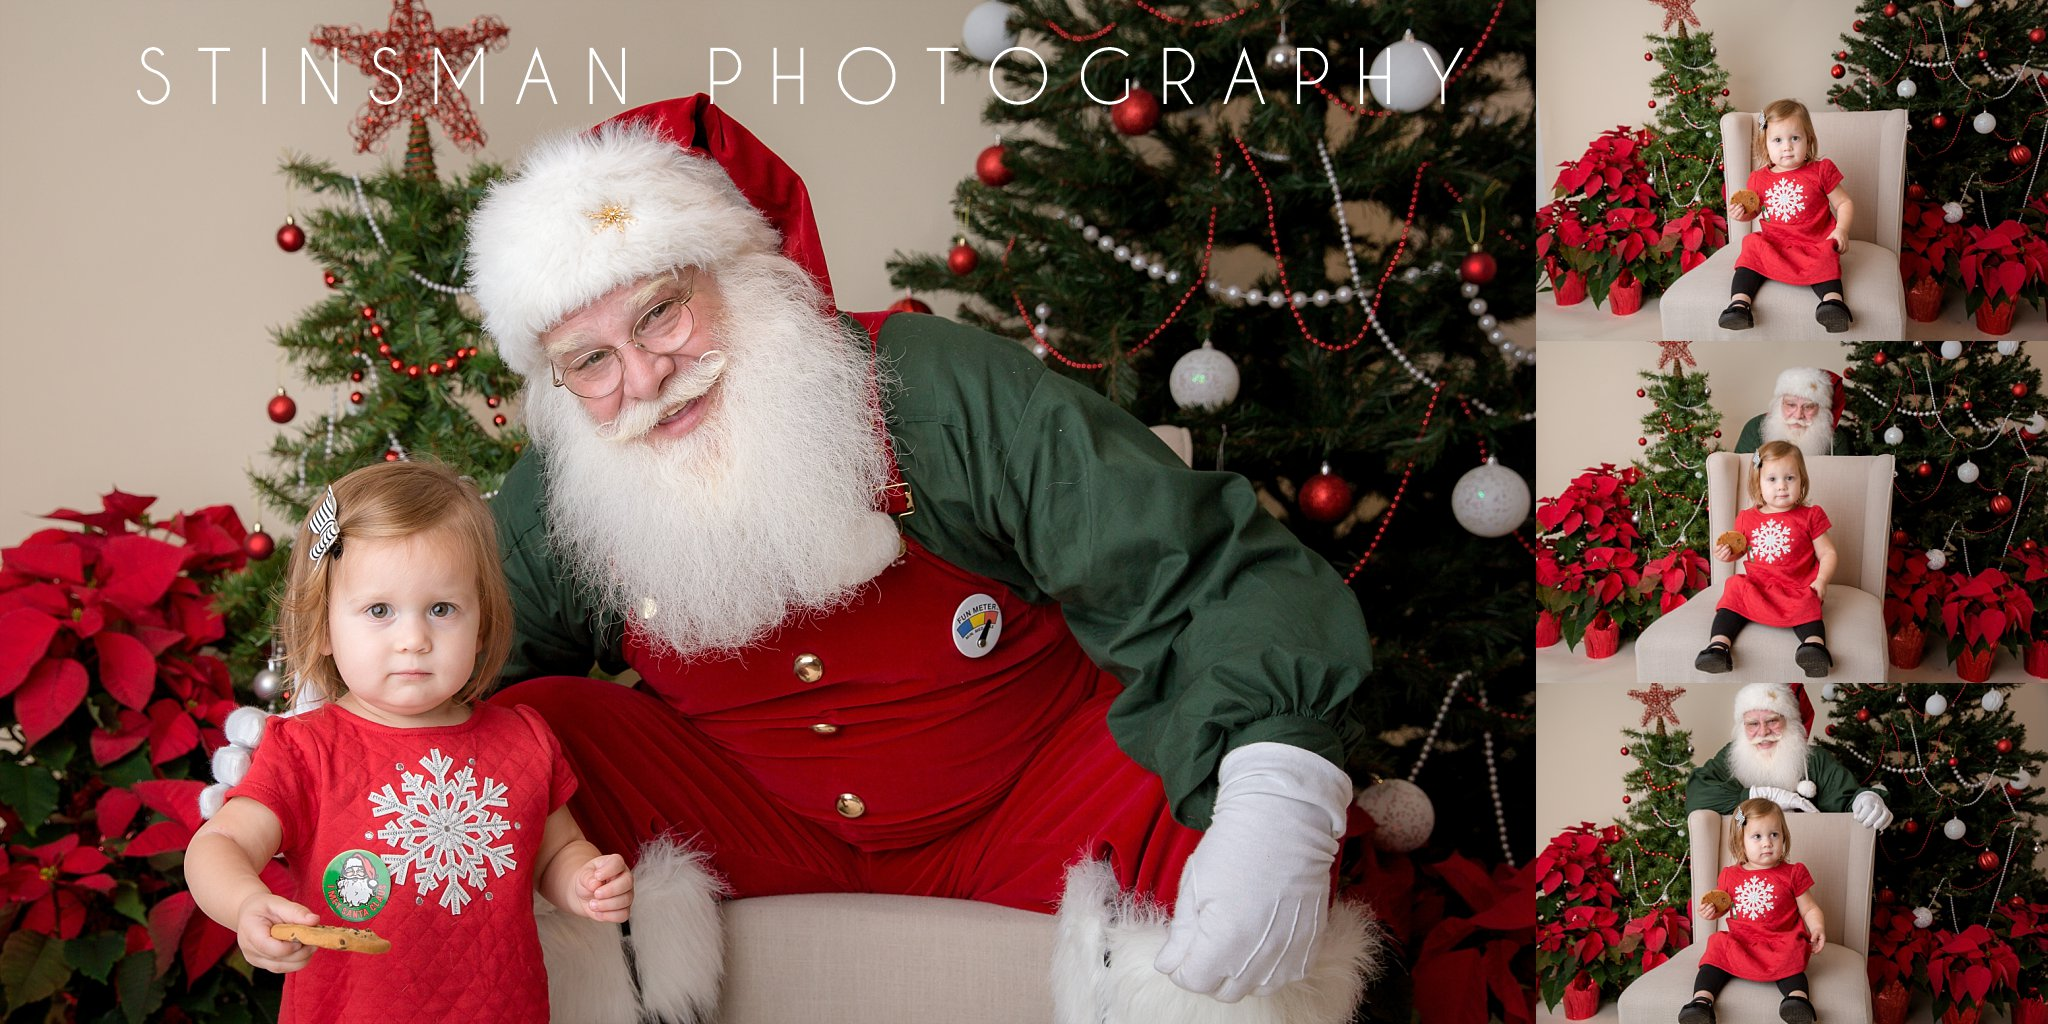 little girl wearing red does not like santa new jersey photographer